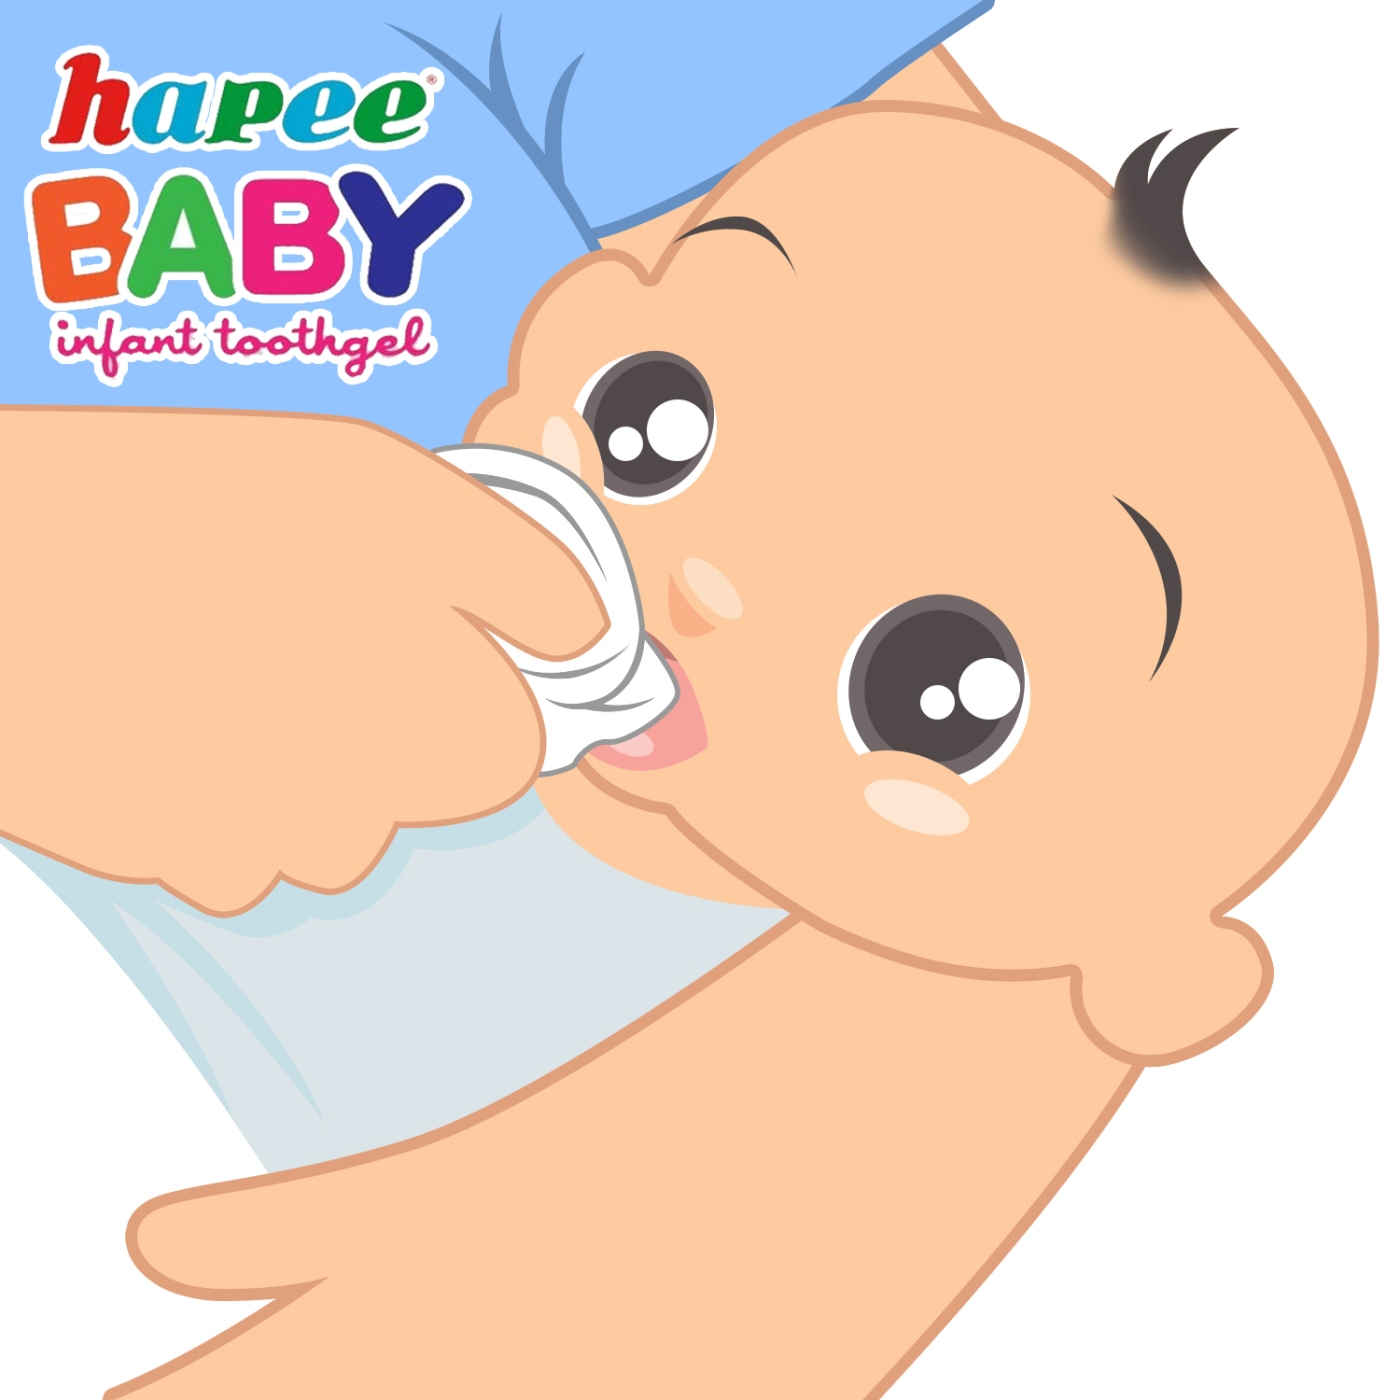 To clean our little one's mouth after feeding, simply apply Hapee Baby Infant Toothgel to the gums using a warm washcloth, a dampened piece of cloth or a finger brush.